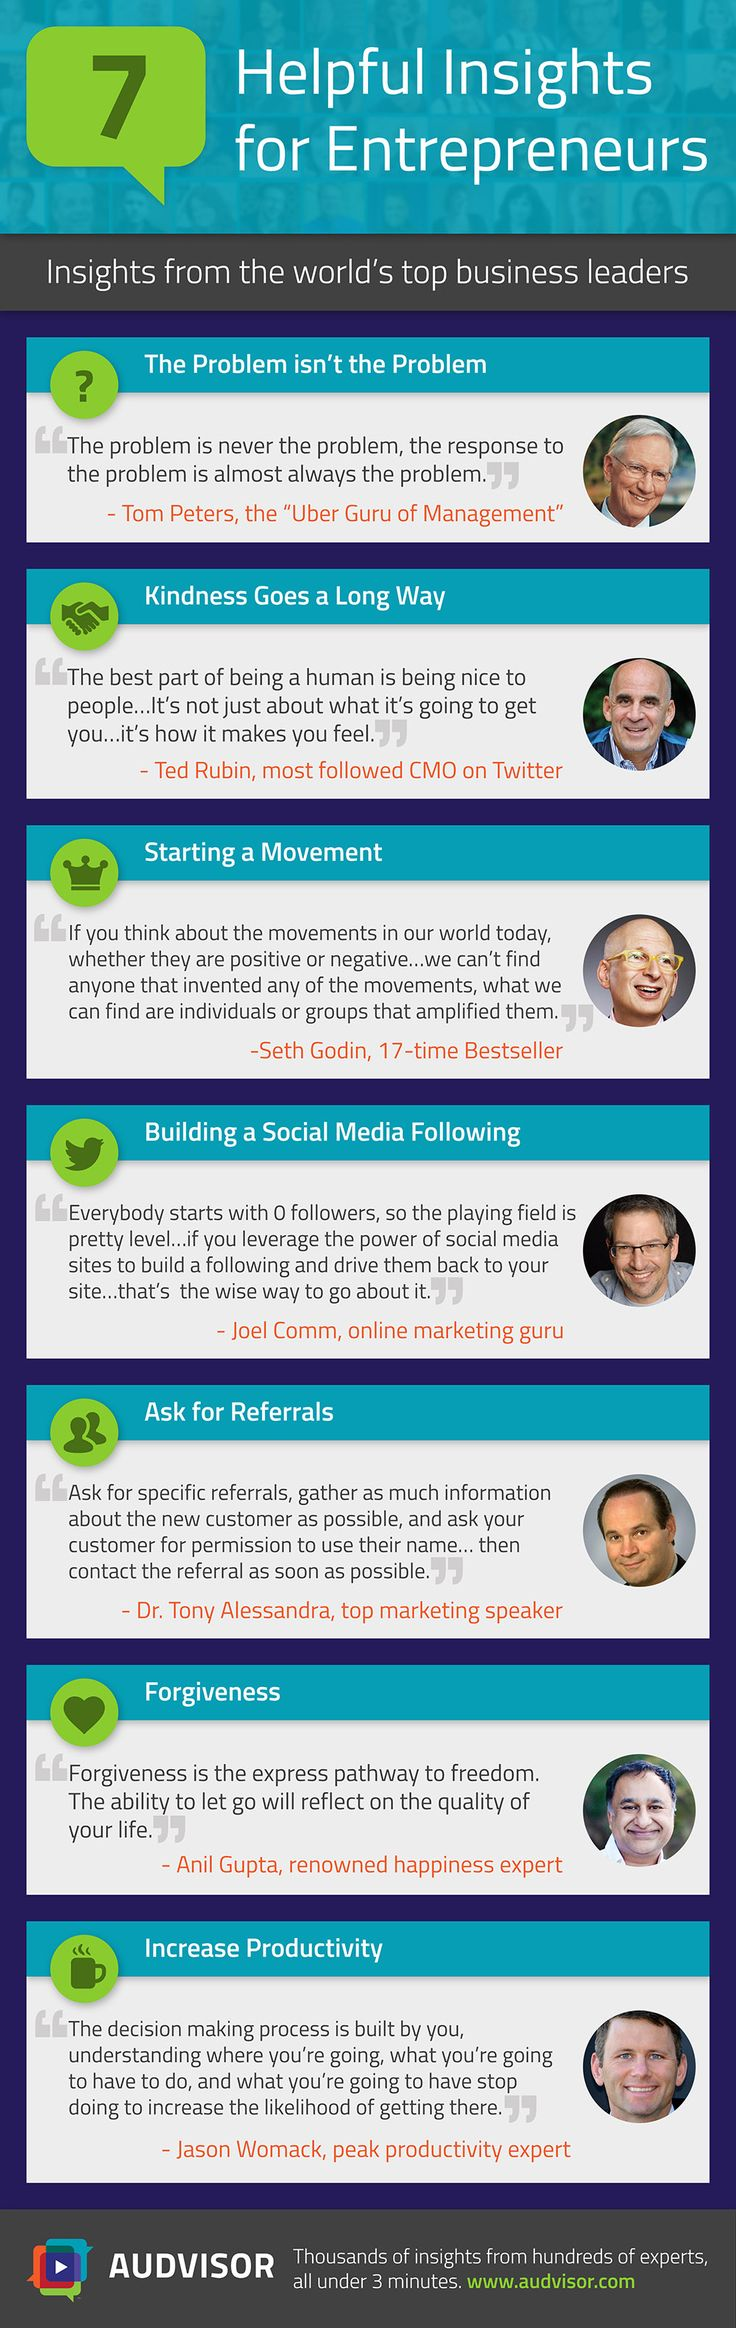 7 Leaders With Sage Advice for Business, and Life (Infographic)   Inc.com